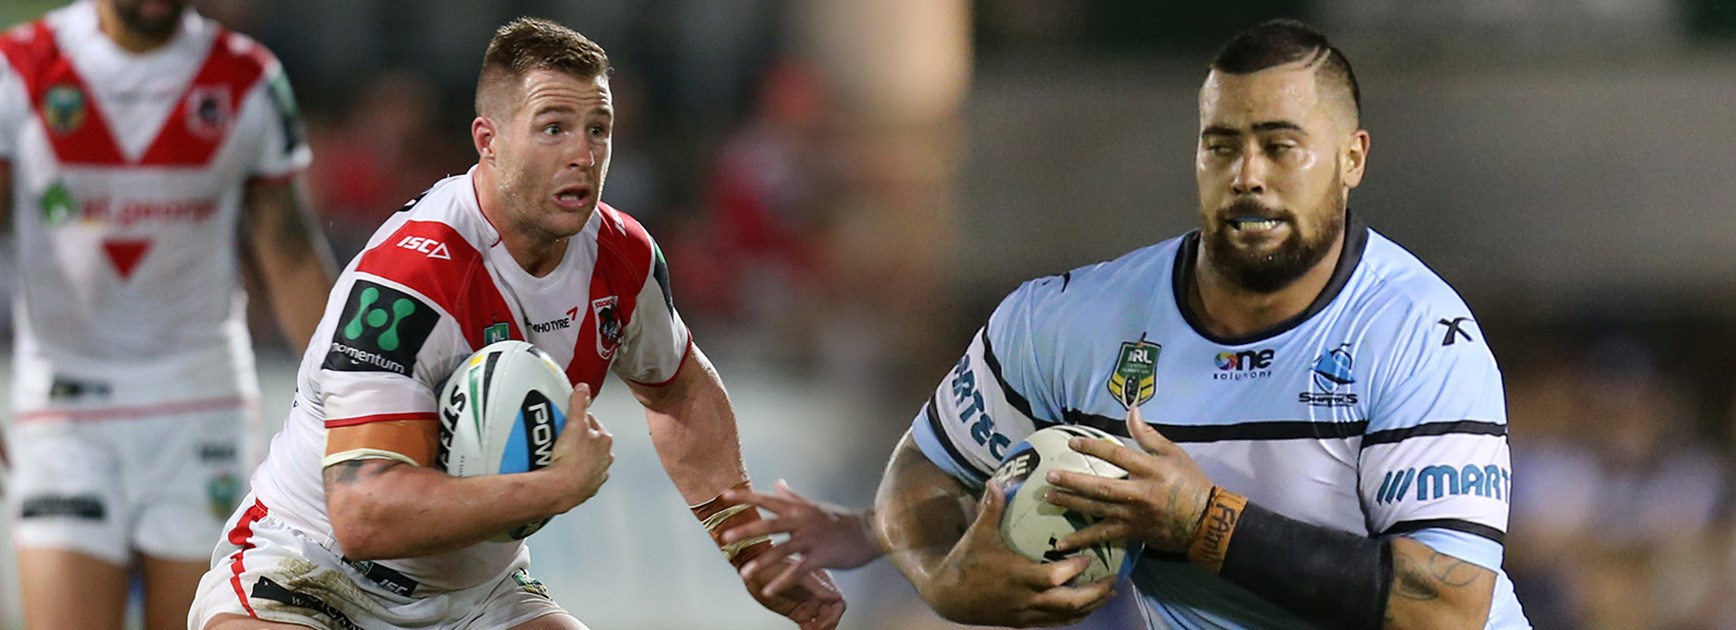 Once were brothers: NSW forwards Trent Merrin and Andrew Fifita will clash in the local derby.